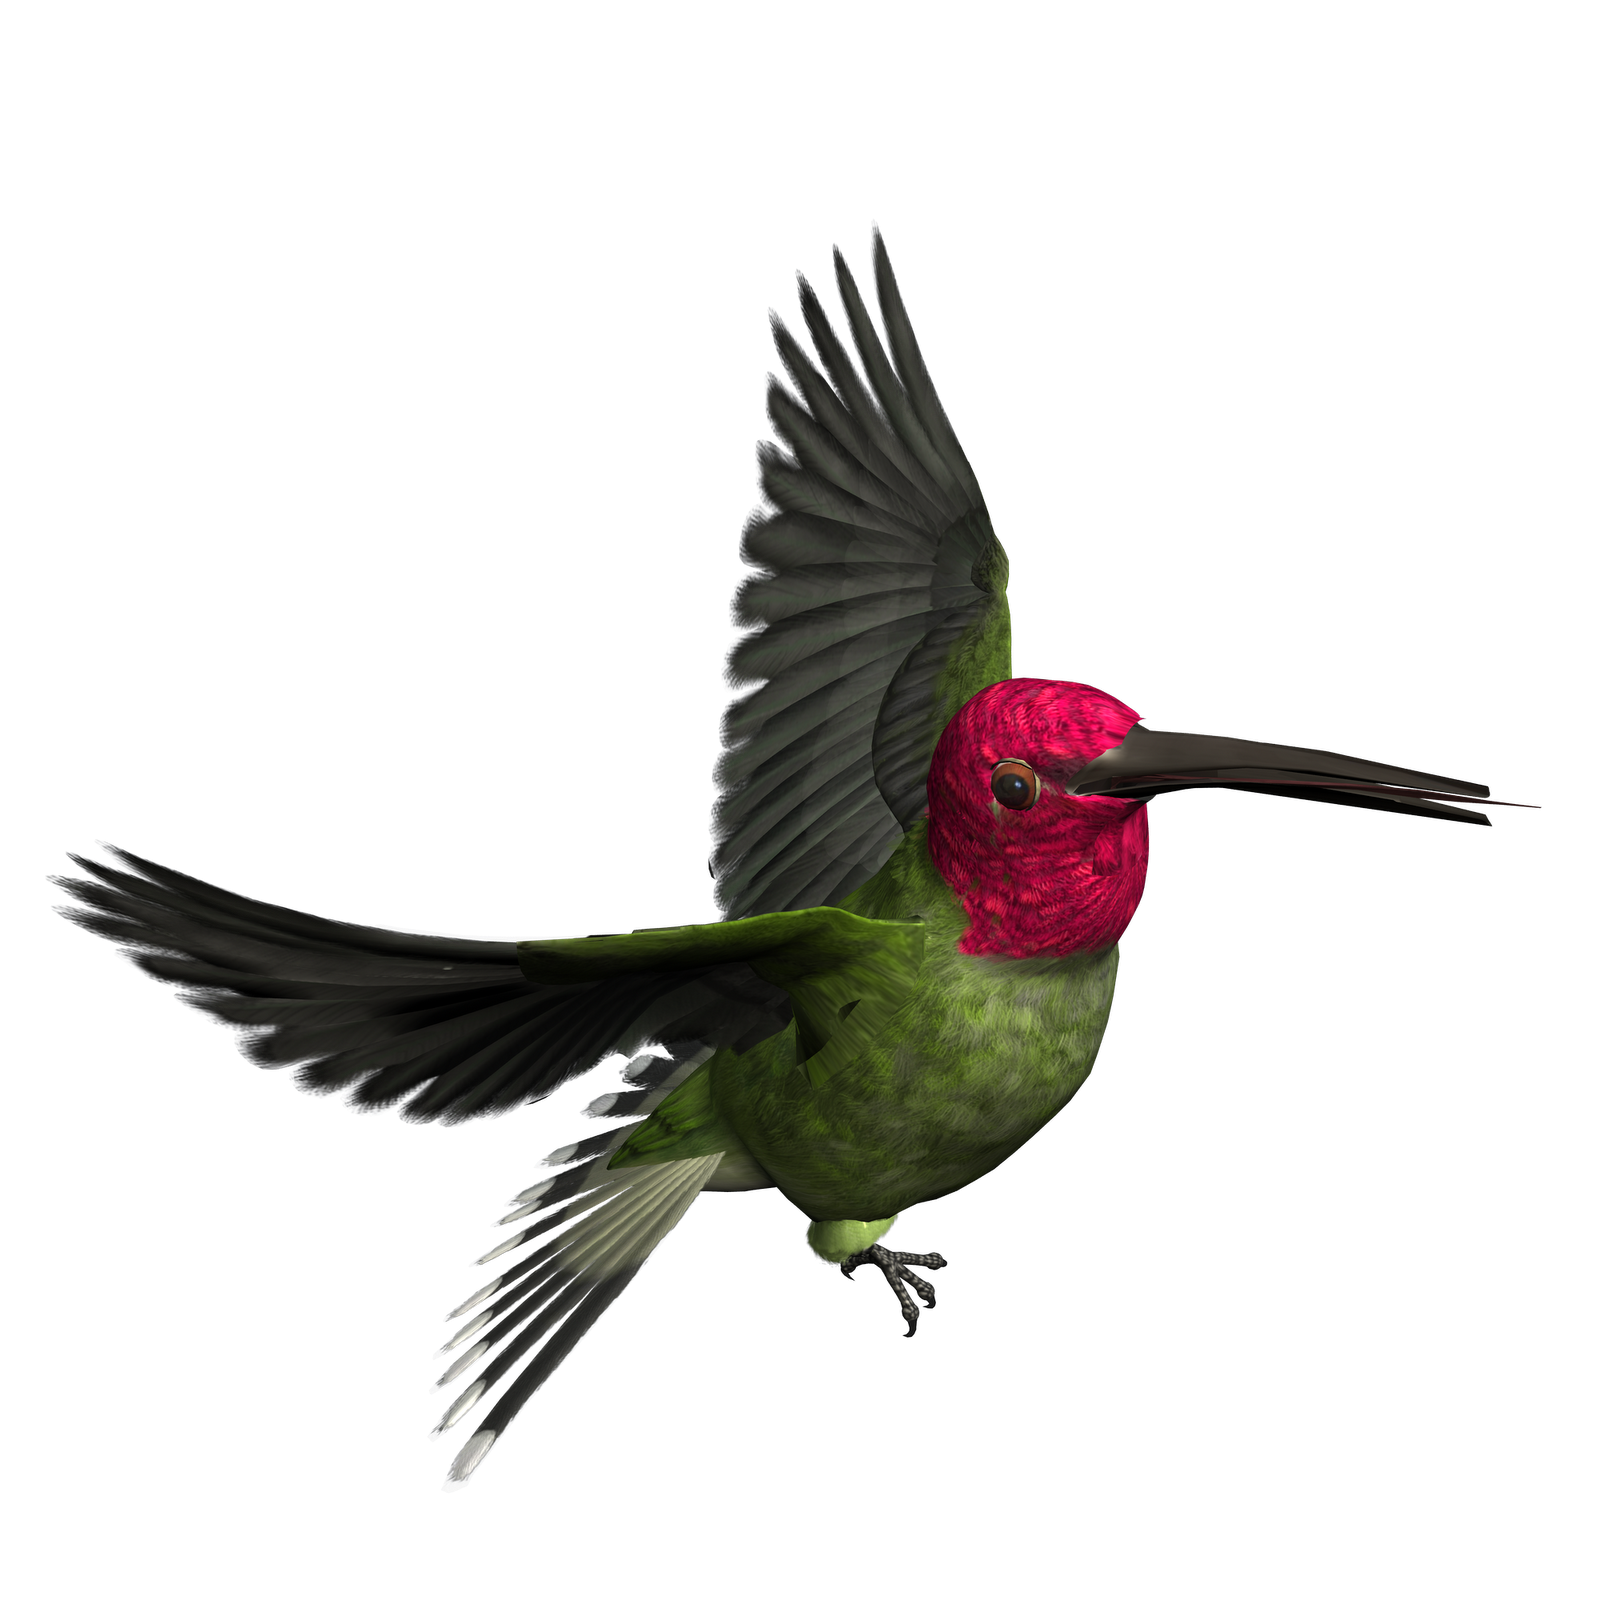 bird clipart graphics clip resolution birds graphic hummingbird cliparts transparent flying woodpecker foot per resting arts designs beats minute while